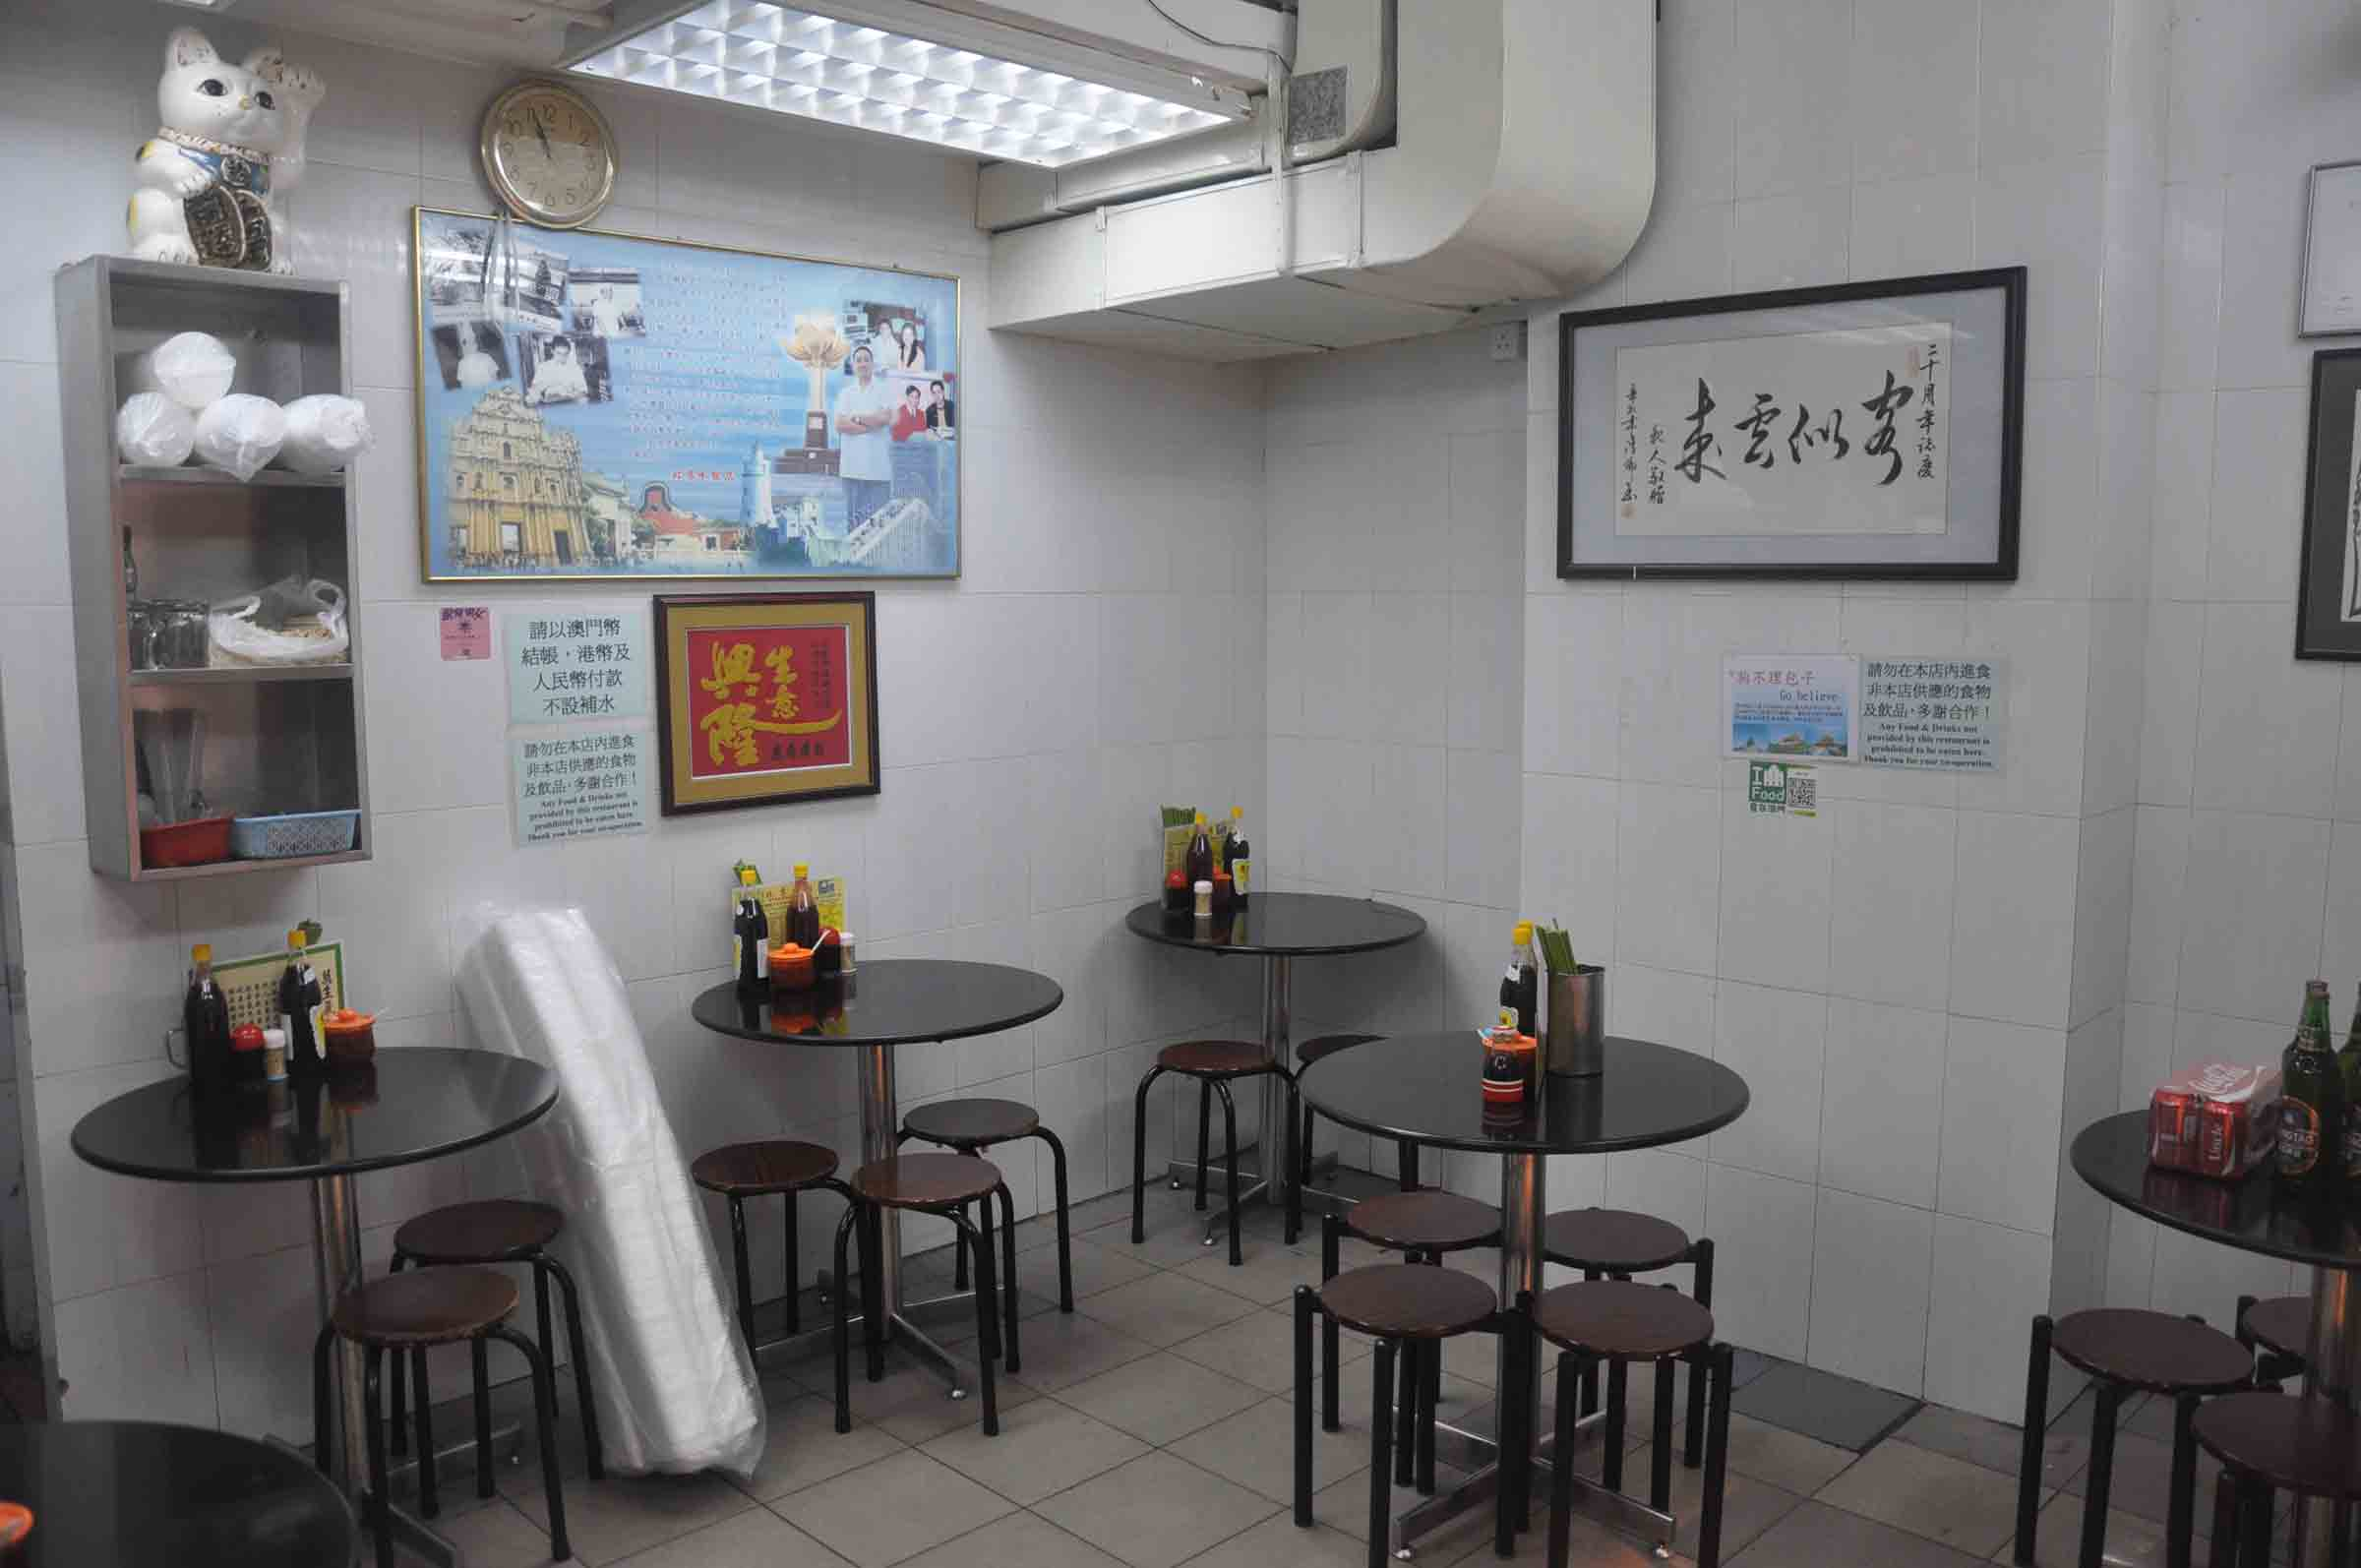 Peking Dumplings Macau interior